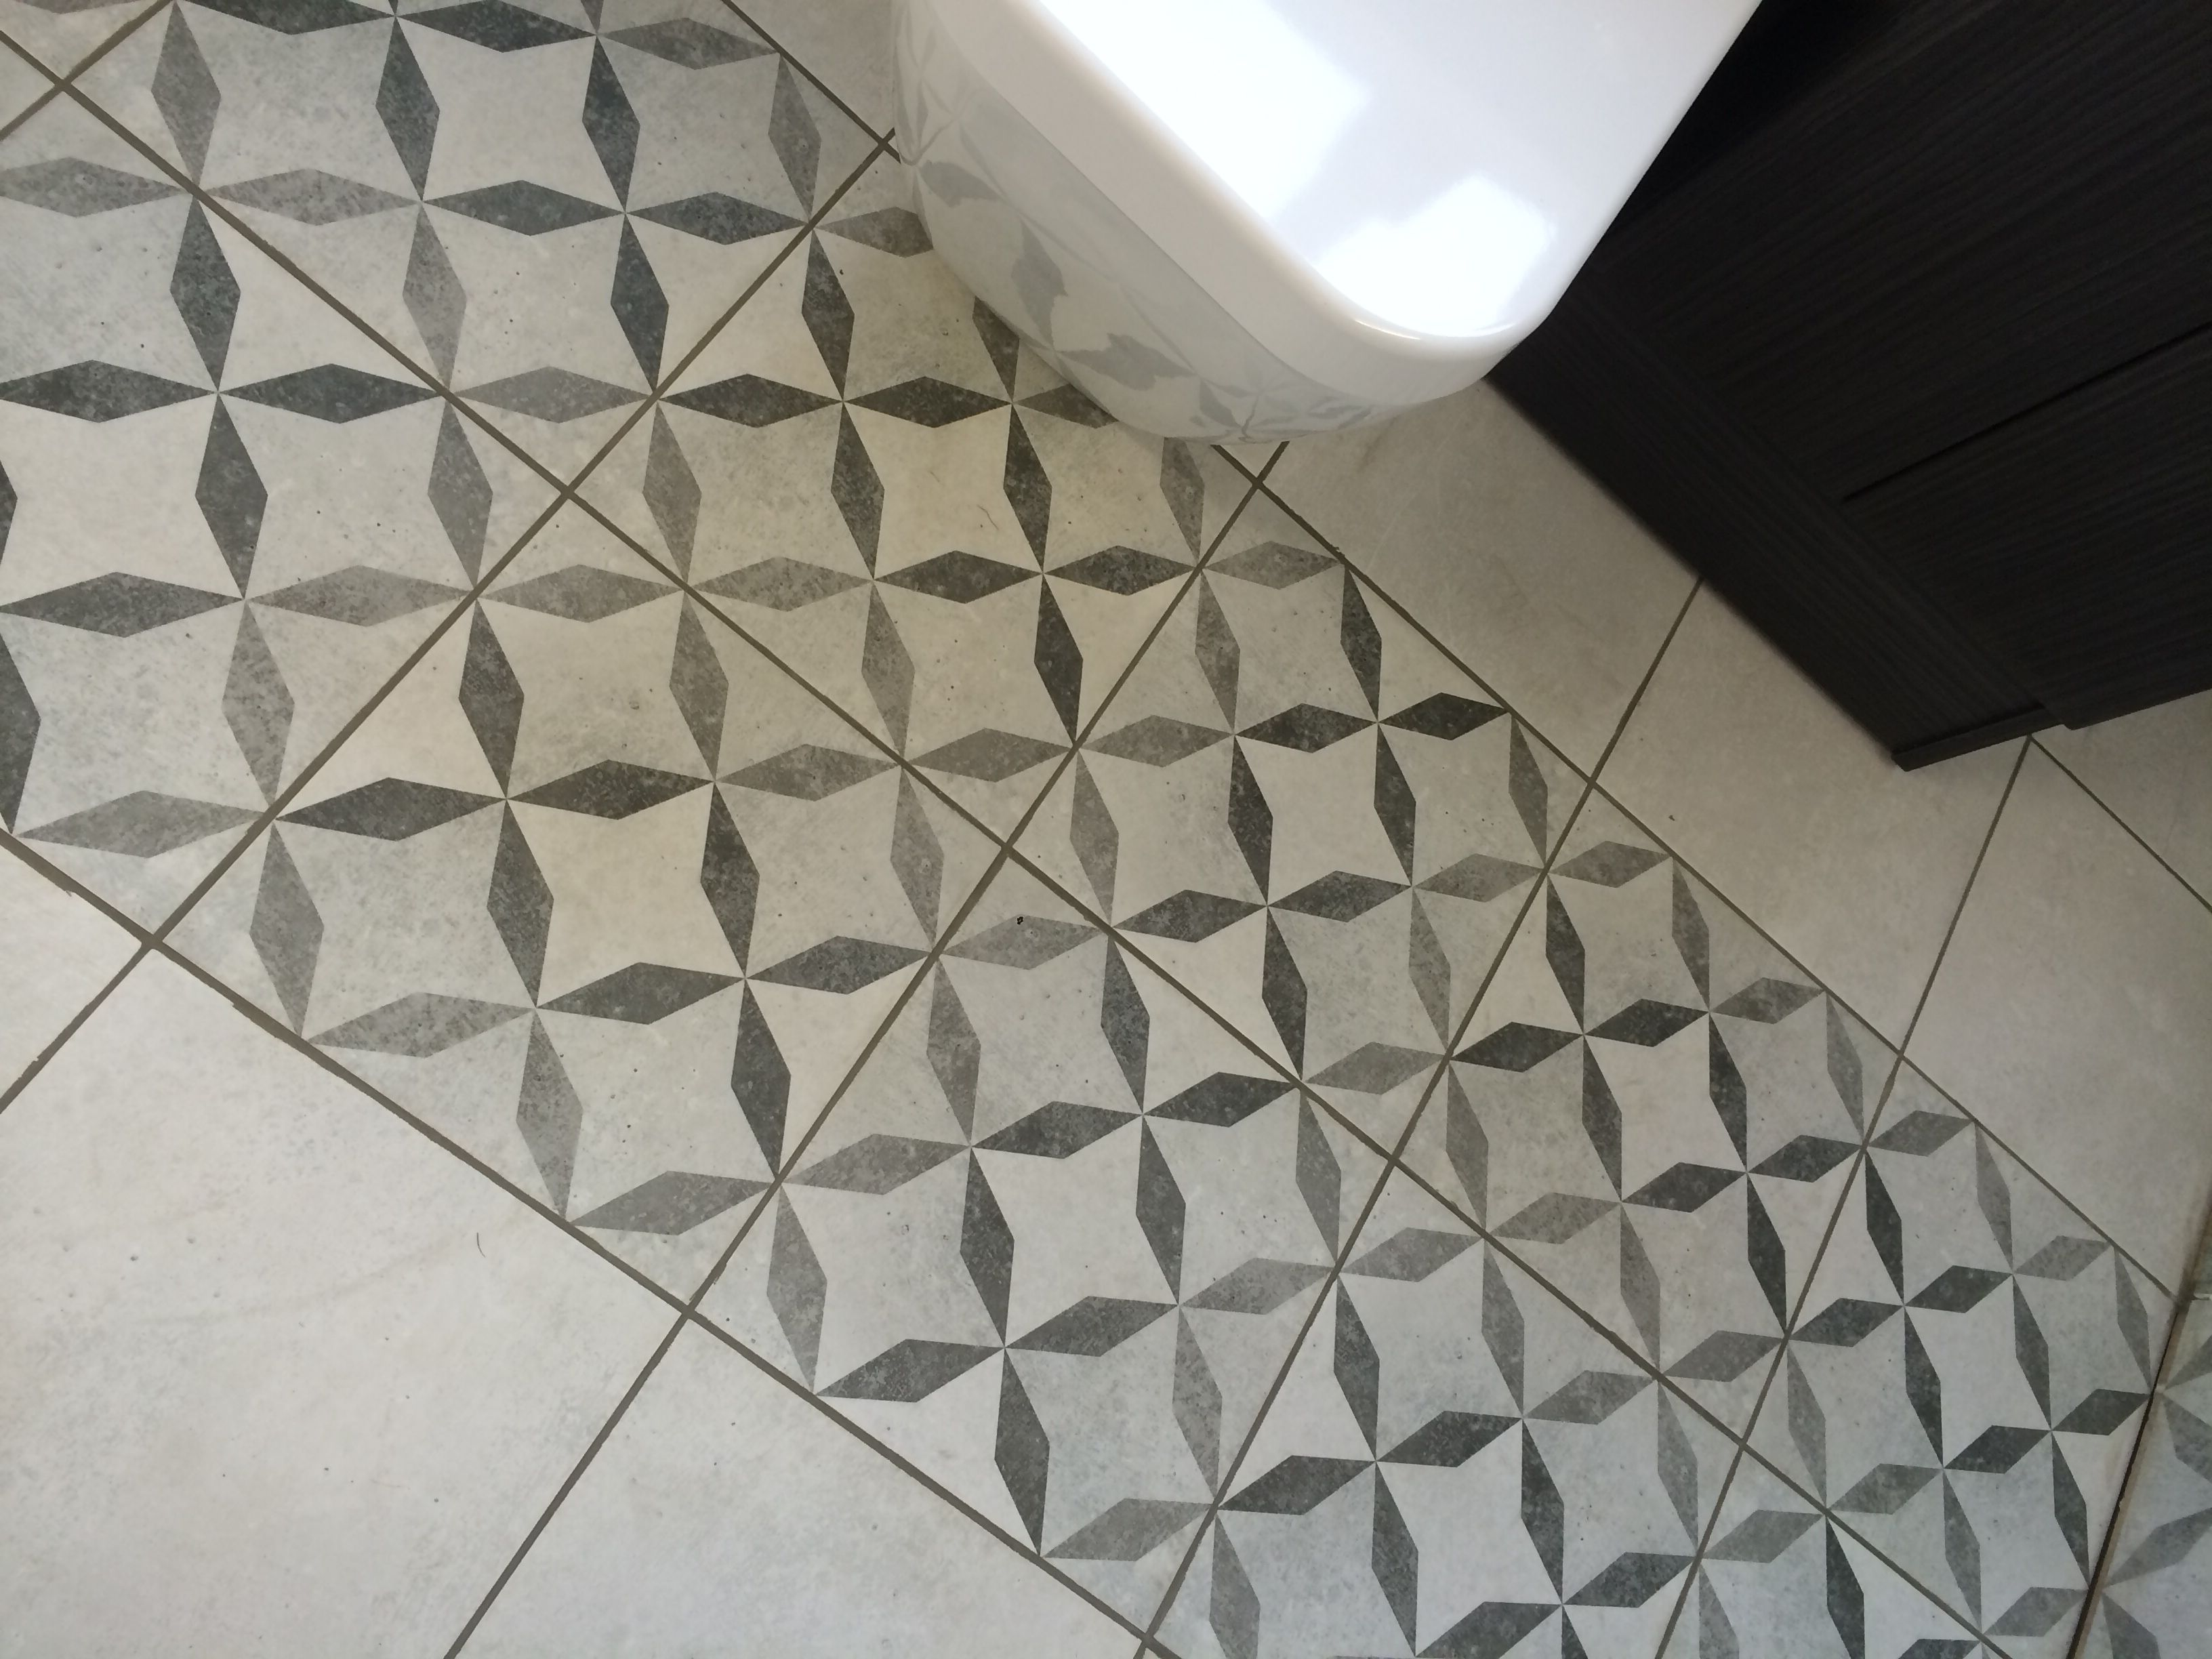 Bct14423 concrete feature floor tiles from british ceramic tiles bct14423 concrete feature floor tiles from british ceramic tiles visit tiledealer dailygadgetfo Image collections